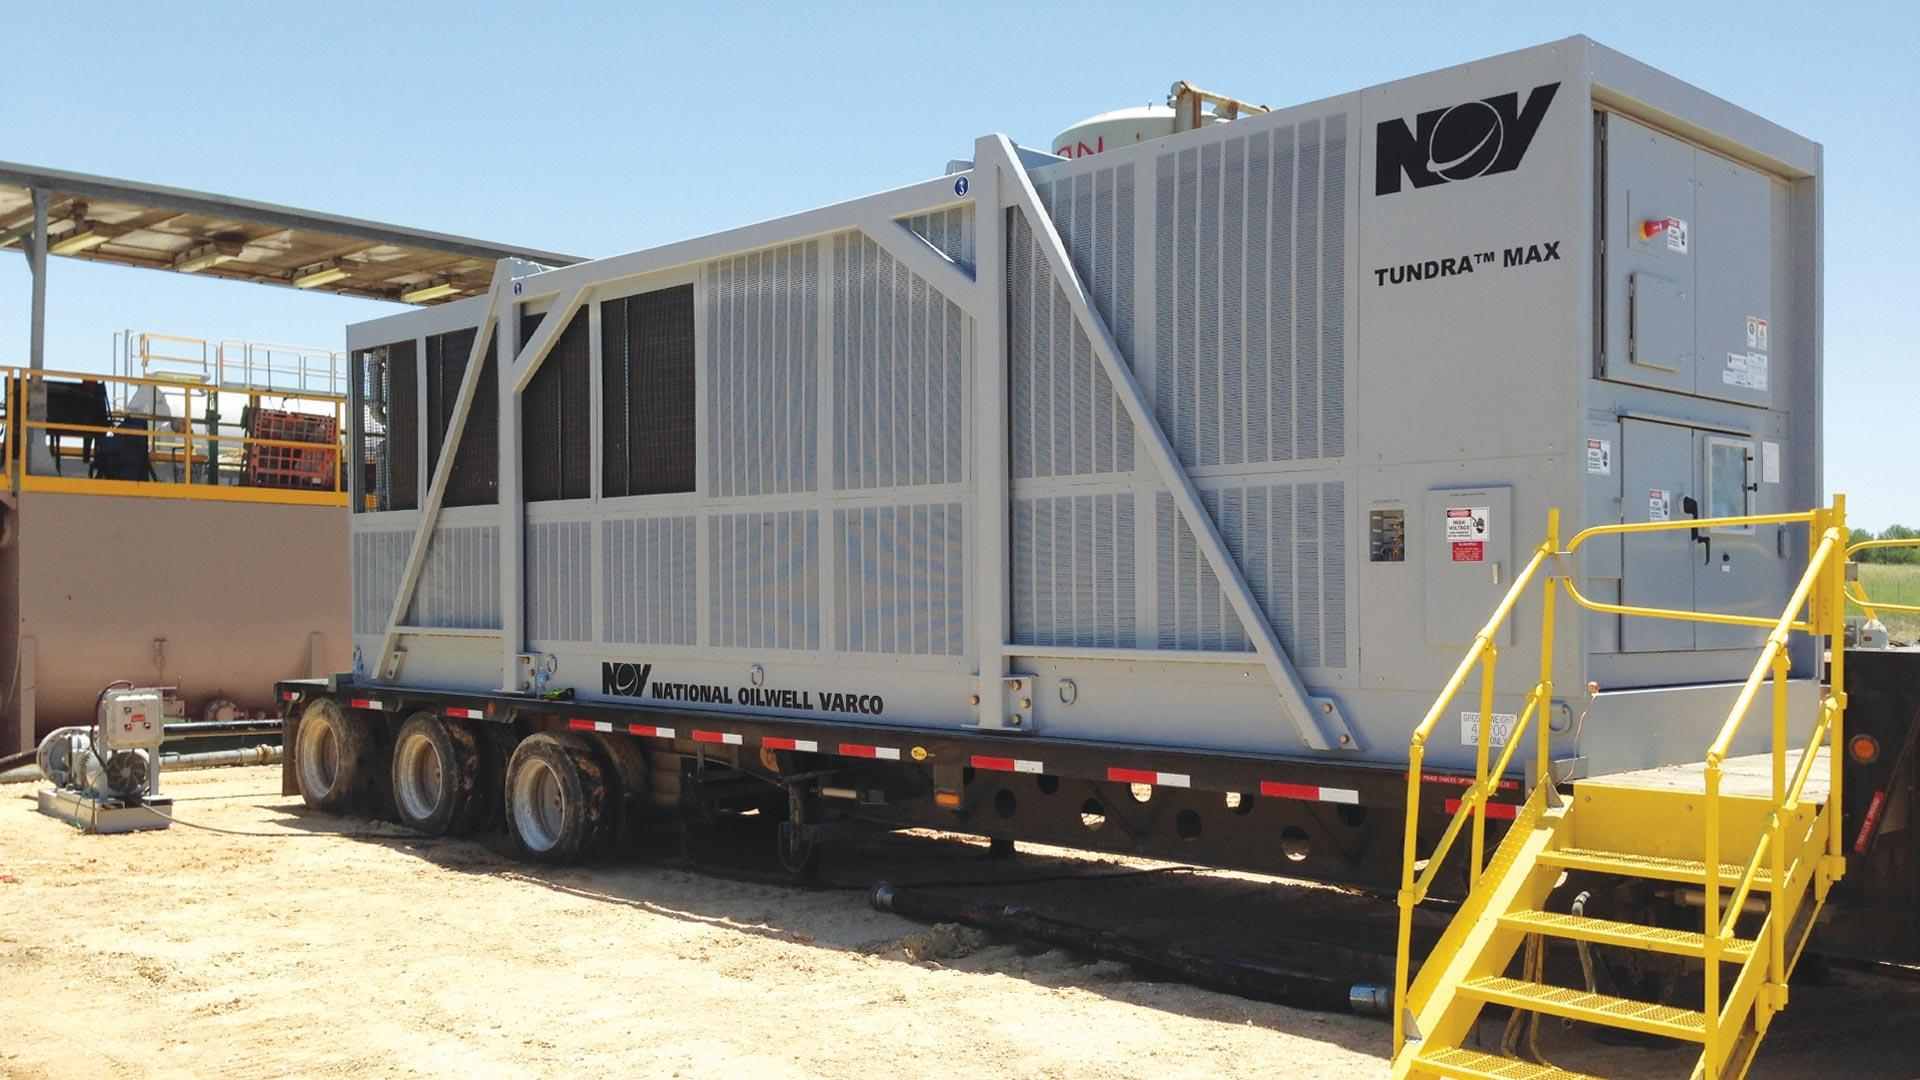 A TUNDRA MAX Onshore Mud Chiller onsite